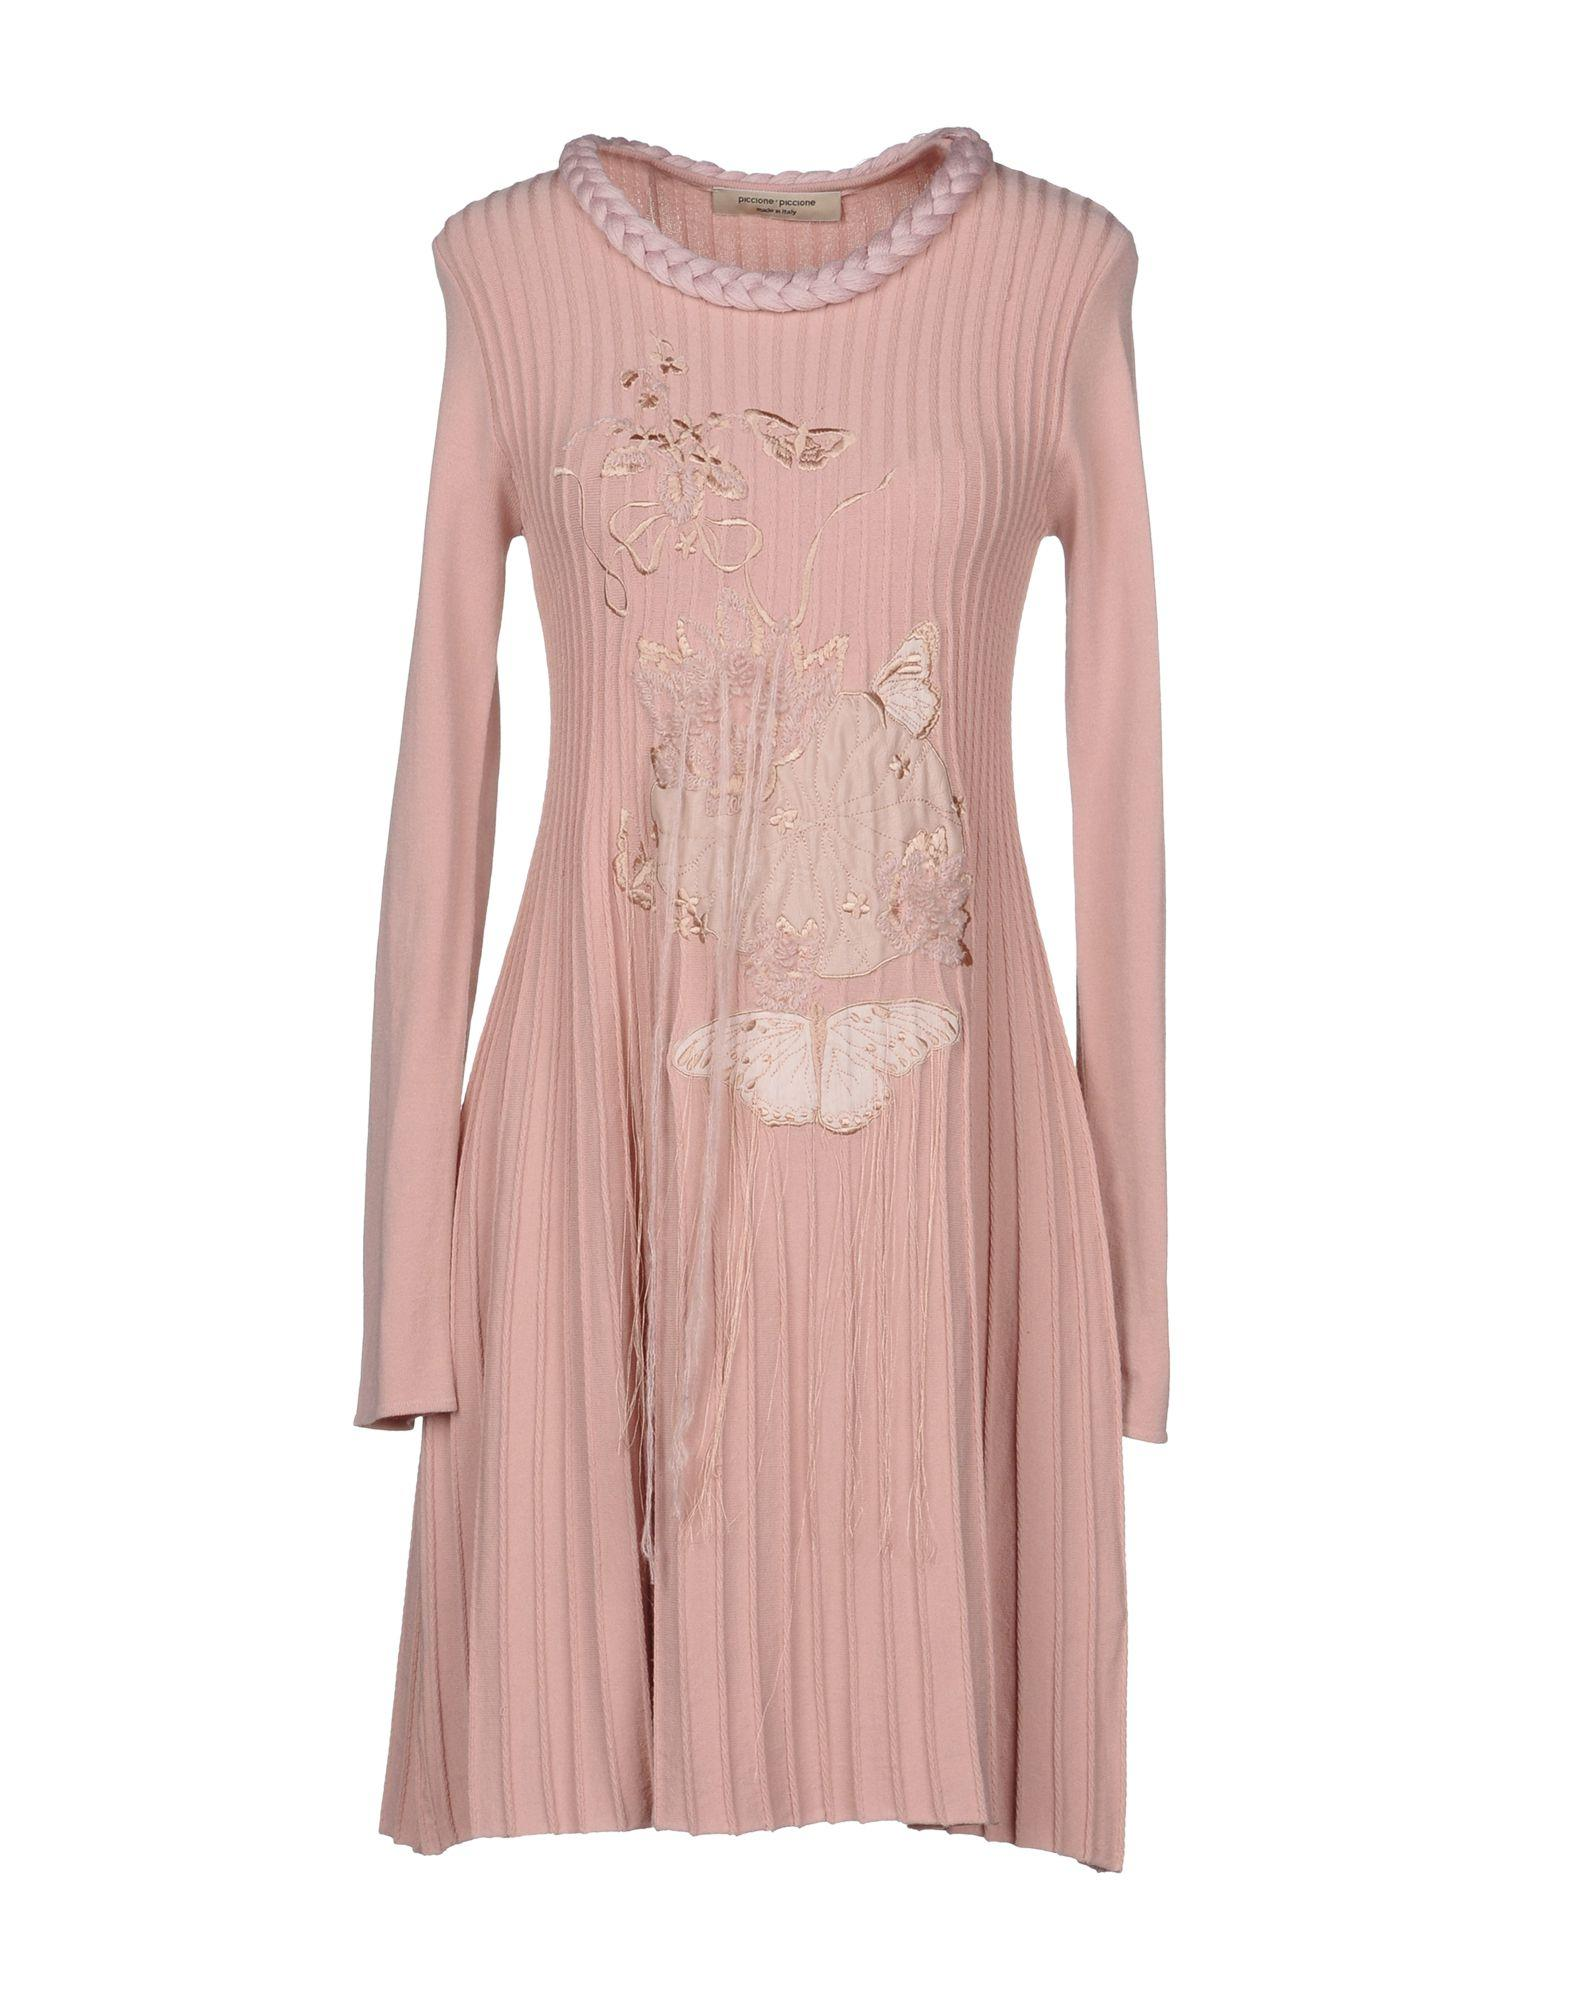 Piccione.piccione Piccione. Piccione Short Dresses In Pink